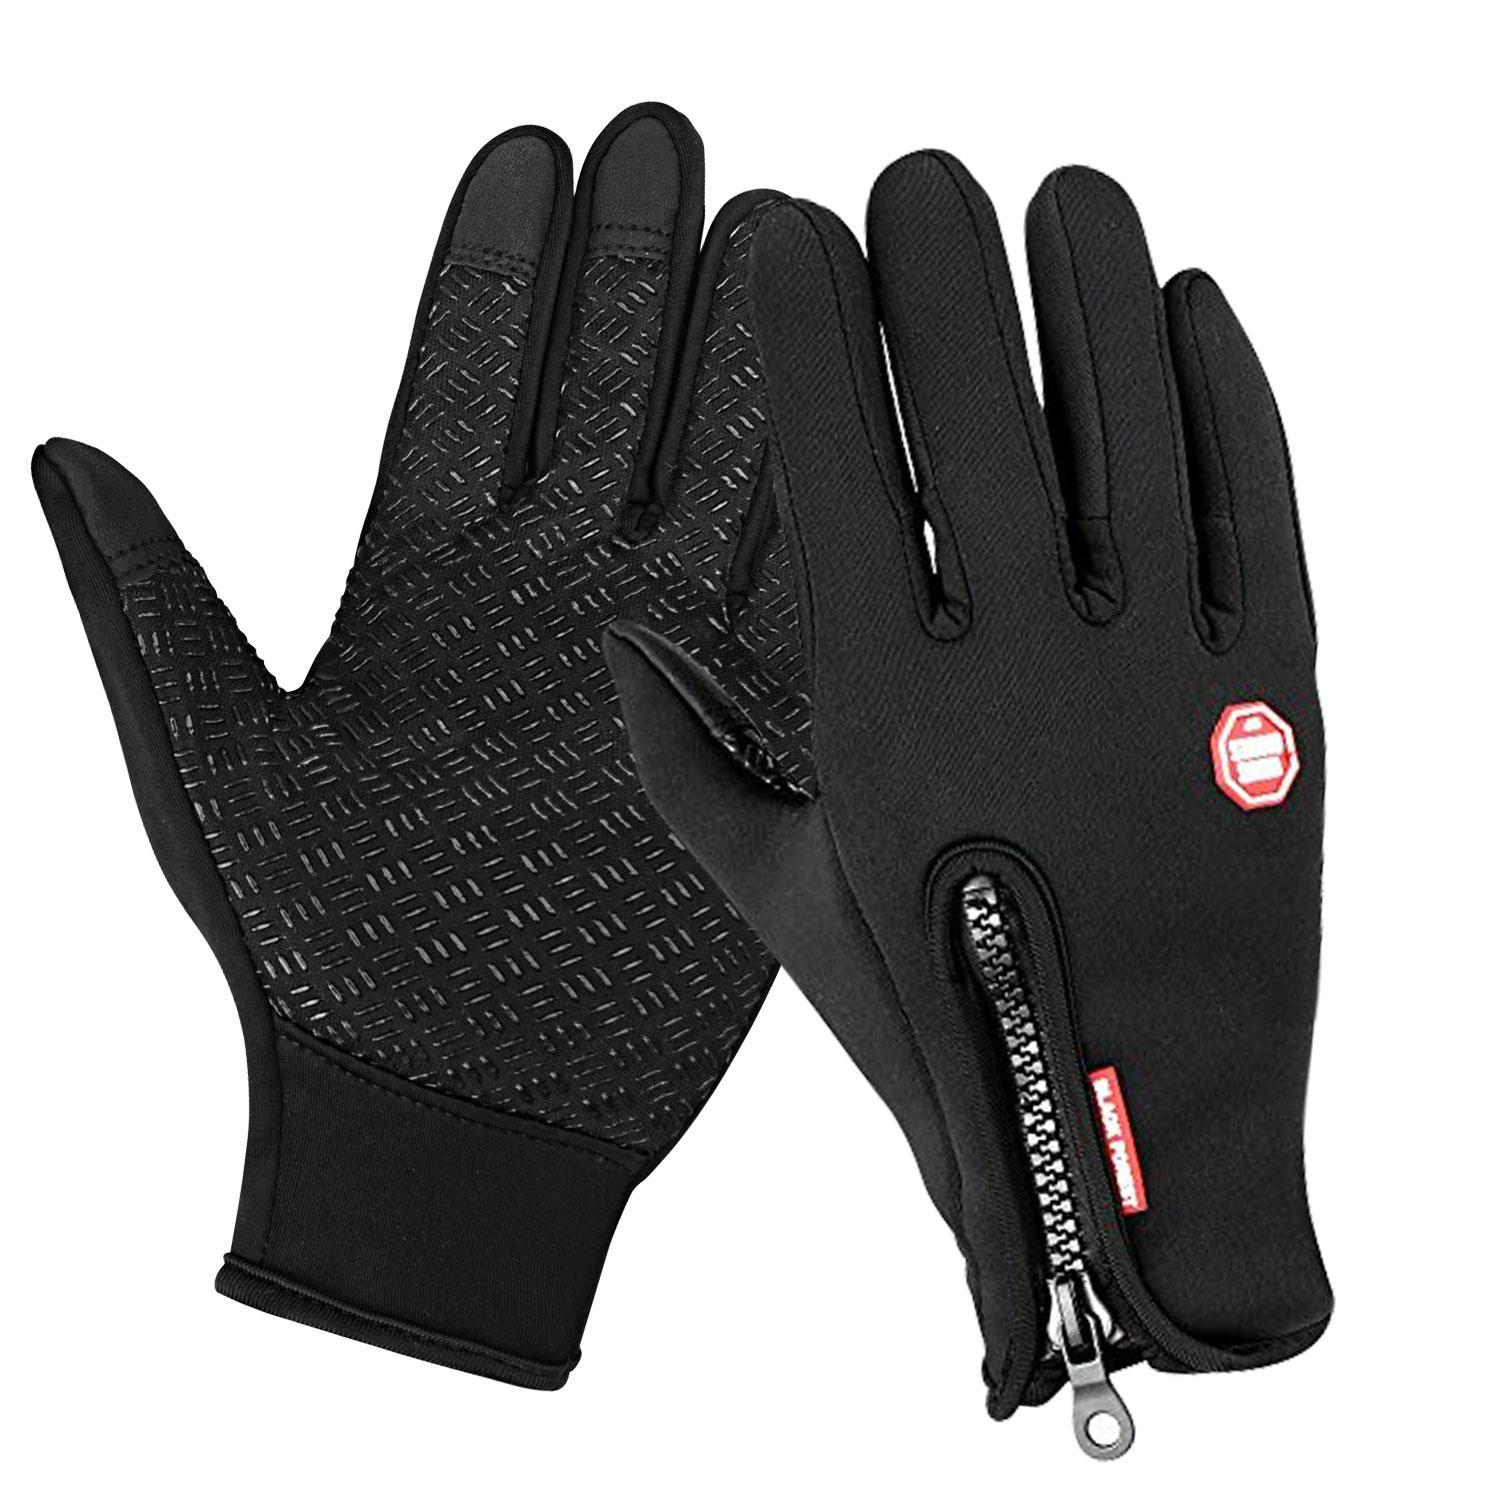 Unisex Touchscreen Gloves M/ L/XL Texting Driving Fleece Lining for Riding GOGBY